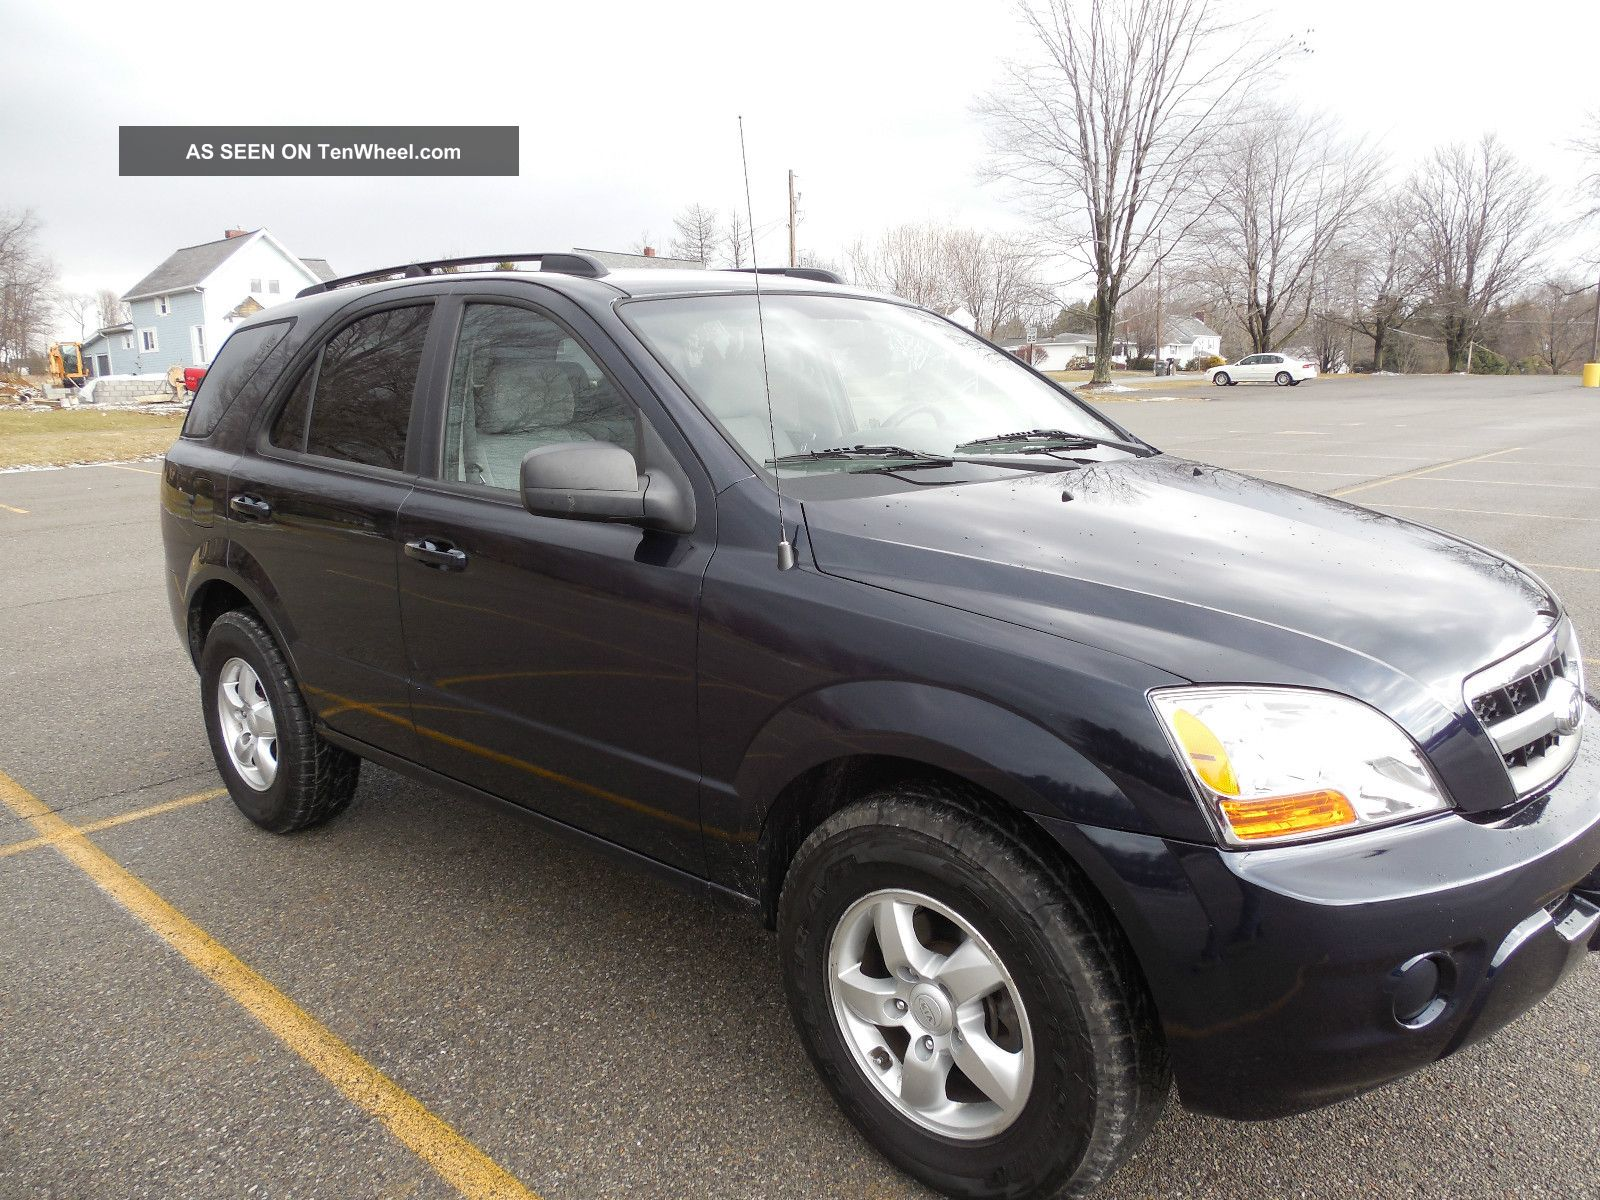 2009 kia sorento lx sport utility suv 4x4 4 door v6 good gas mileage. Black Bedroom Furniture Sets. Home Design Ideas